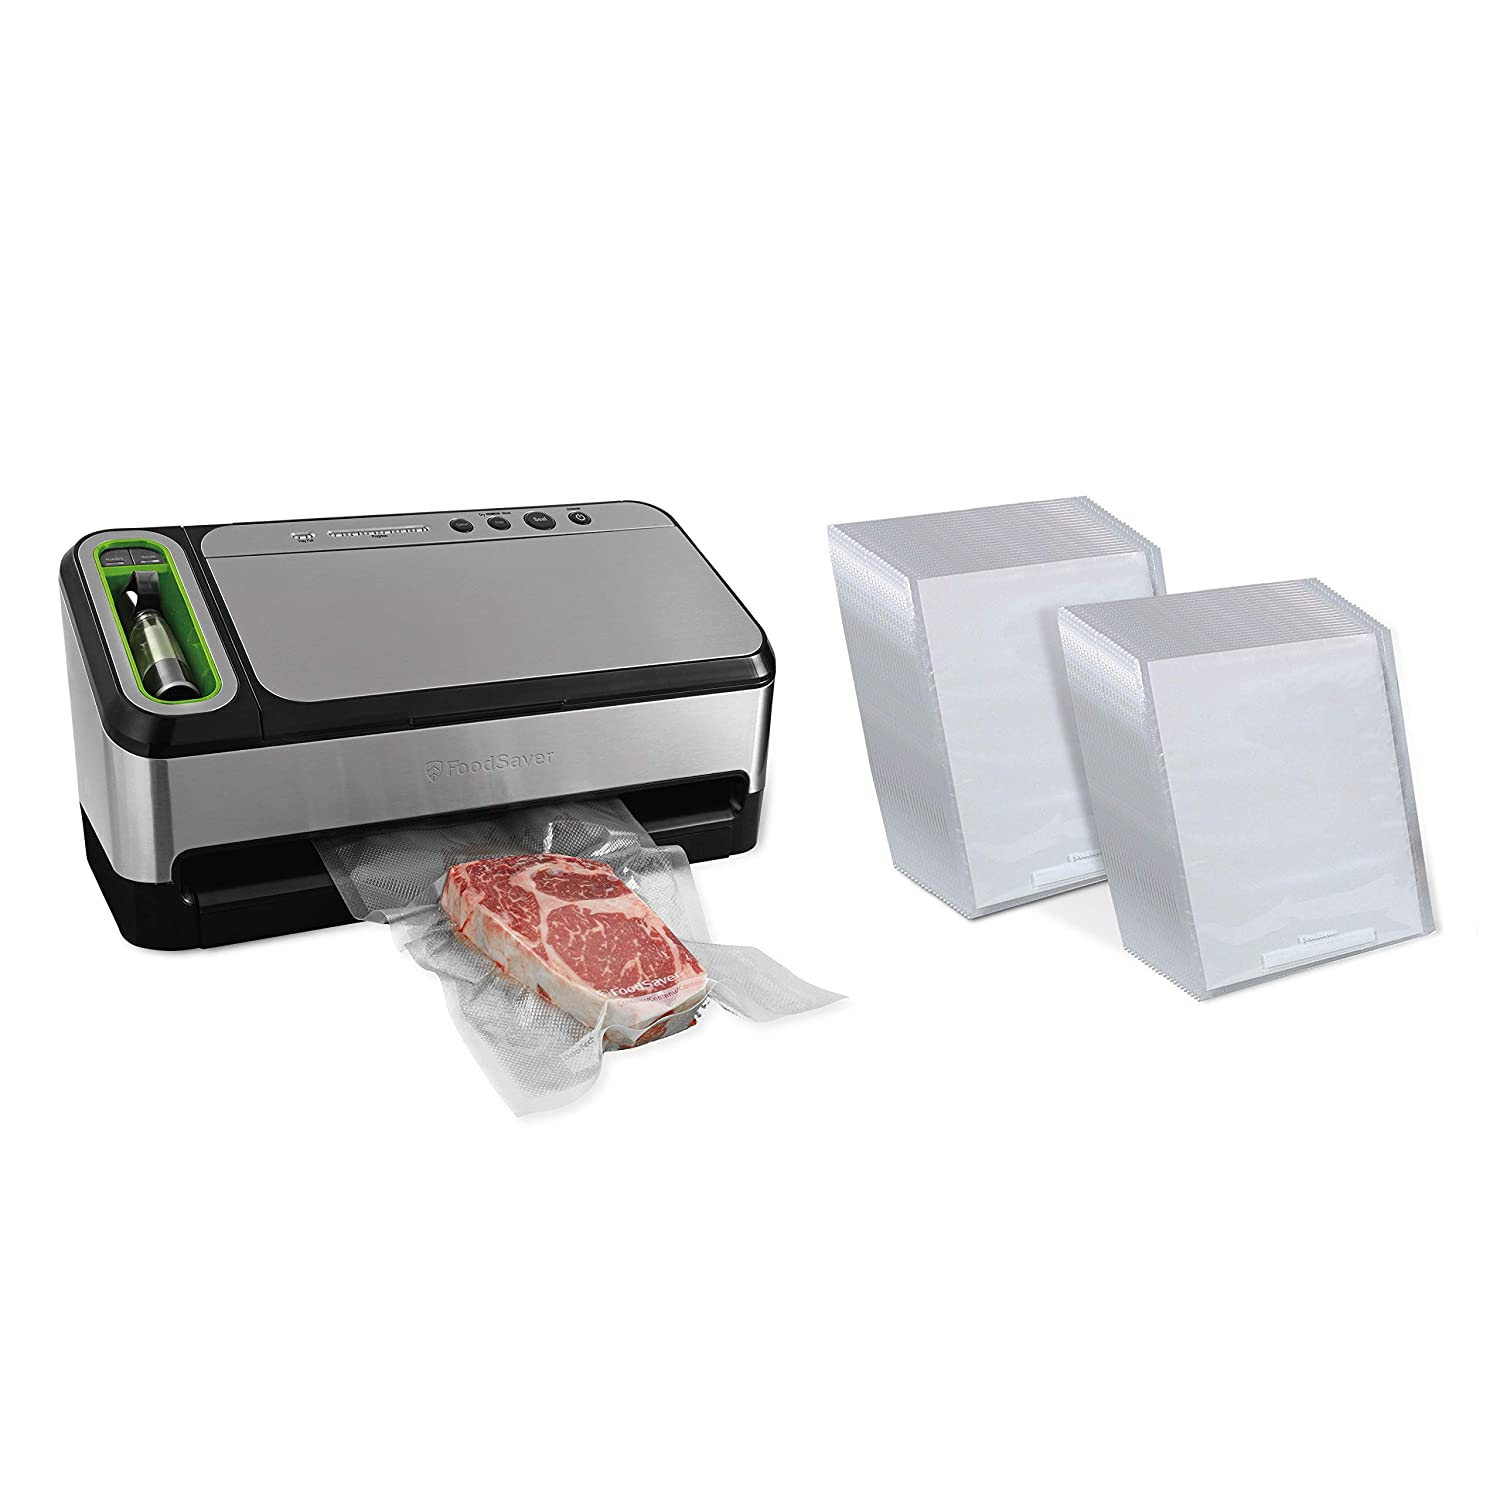 FoodSaver 4440 Vacuum Sealer 2-in-1 Automatic System with Bonus Built-in Retractable Handheld Sealer and Starter Kit & FoodSaver 1-Quart Pre-Cut Vacuum Seal Bags, 44 Count